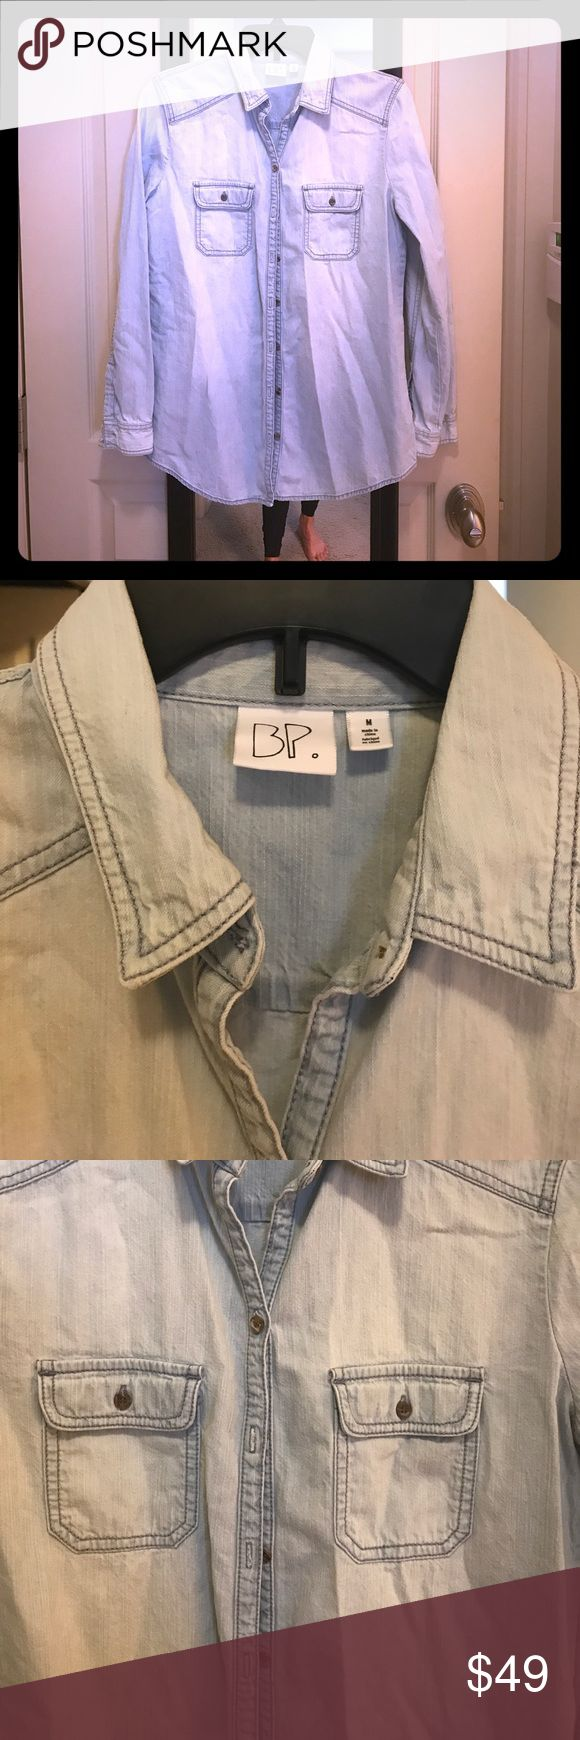 BP Light Denim Shirt Size Medium BP From Nordstrom... A Light Denim Classic Shirt.. Size Medium.. Only worn 1 Time... Perfect For Summer Spring and Fall... BP Nordstrom Tops Button Down Shirts